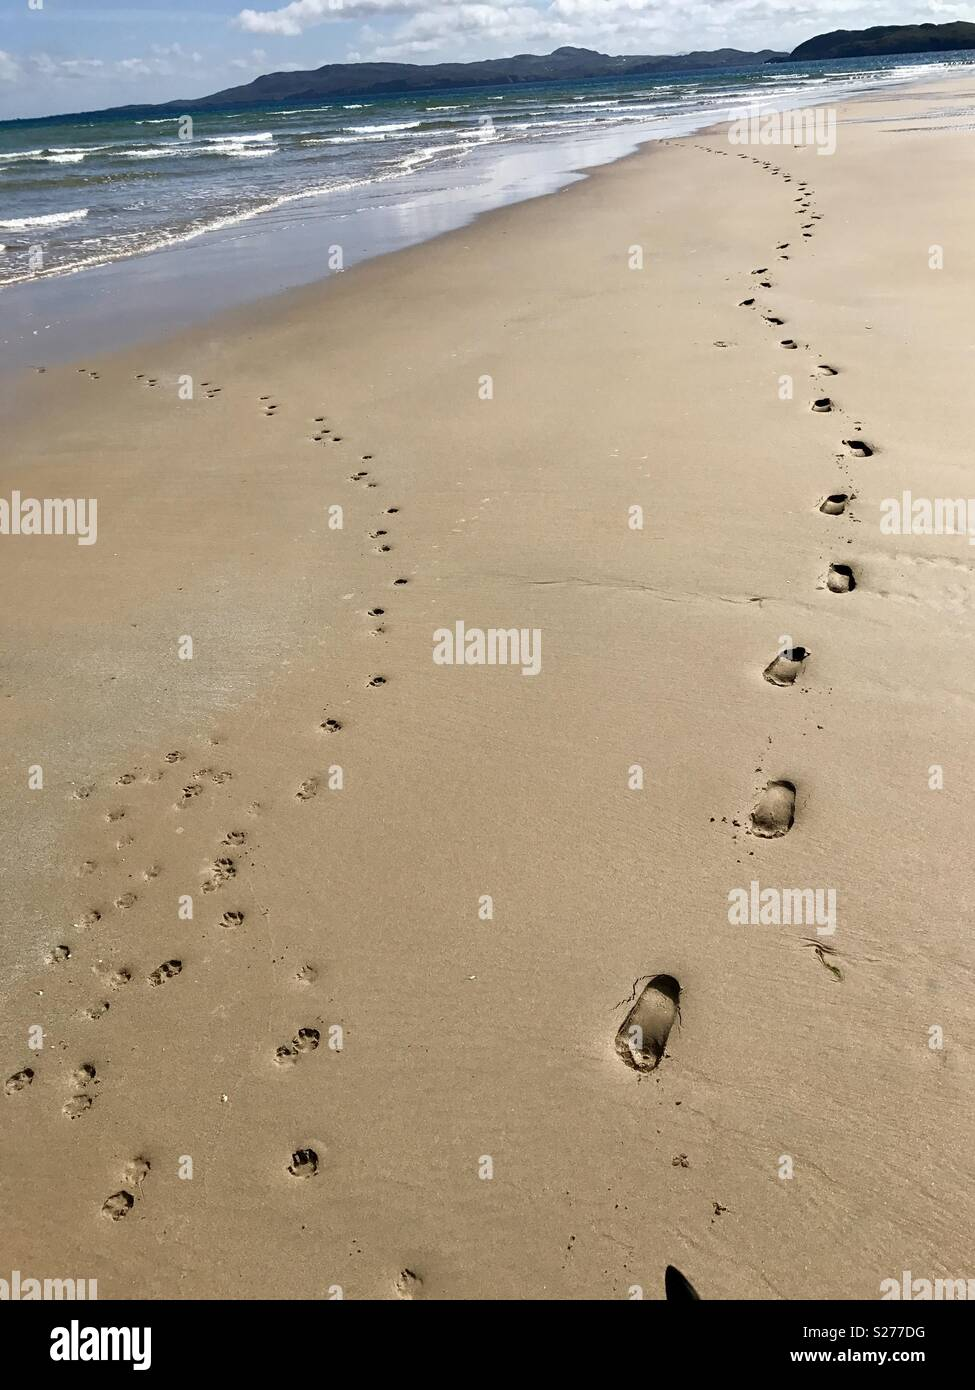 Foot / paw prints in the sand - Stock Image